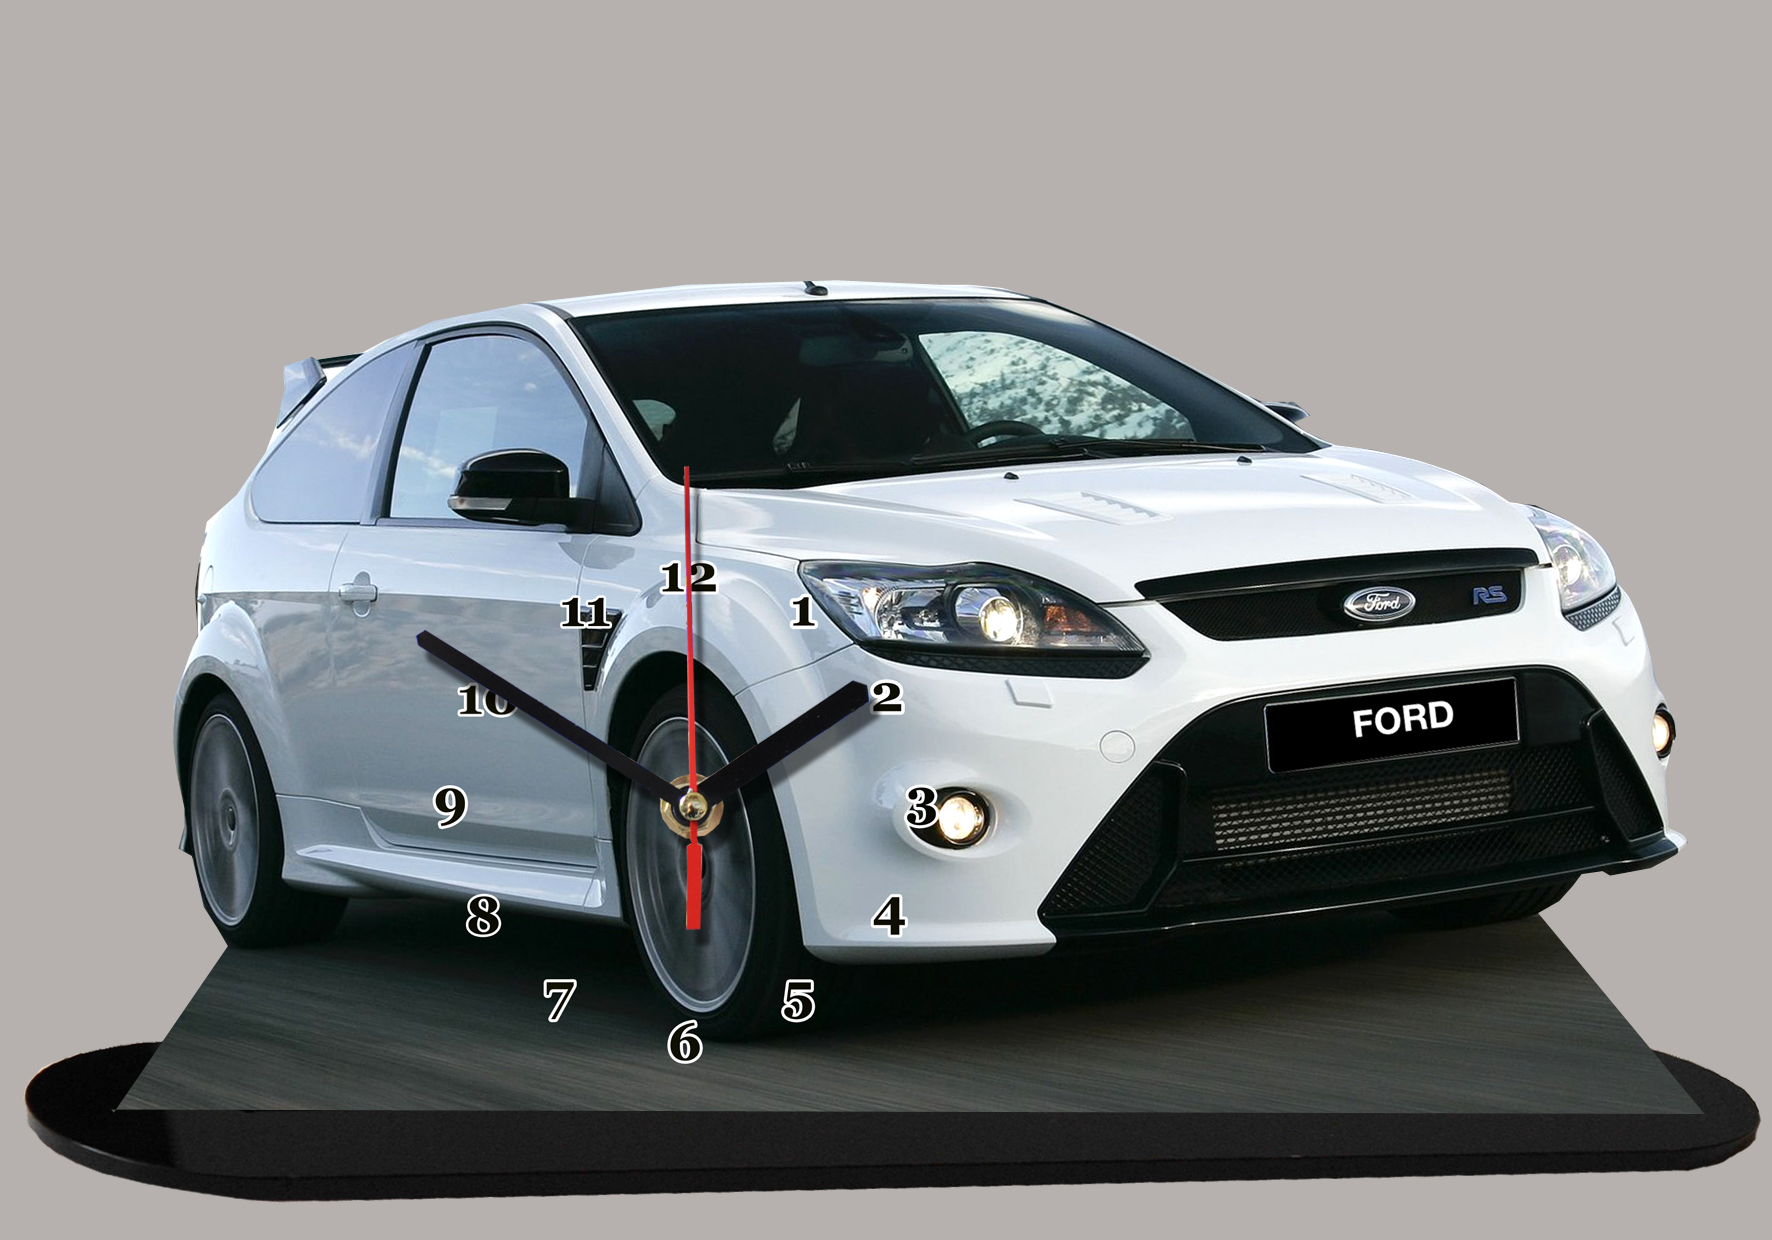 ford focus blanche rs 01 auto horloge miniature. Black Bedroom Furniture Sets. Home Design Ideas